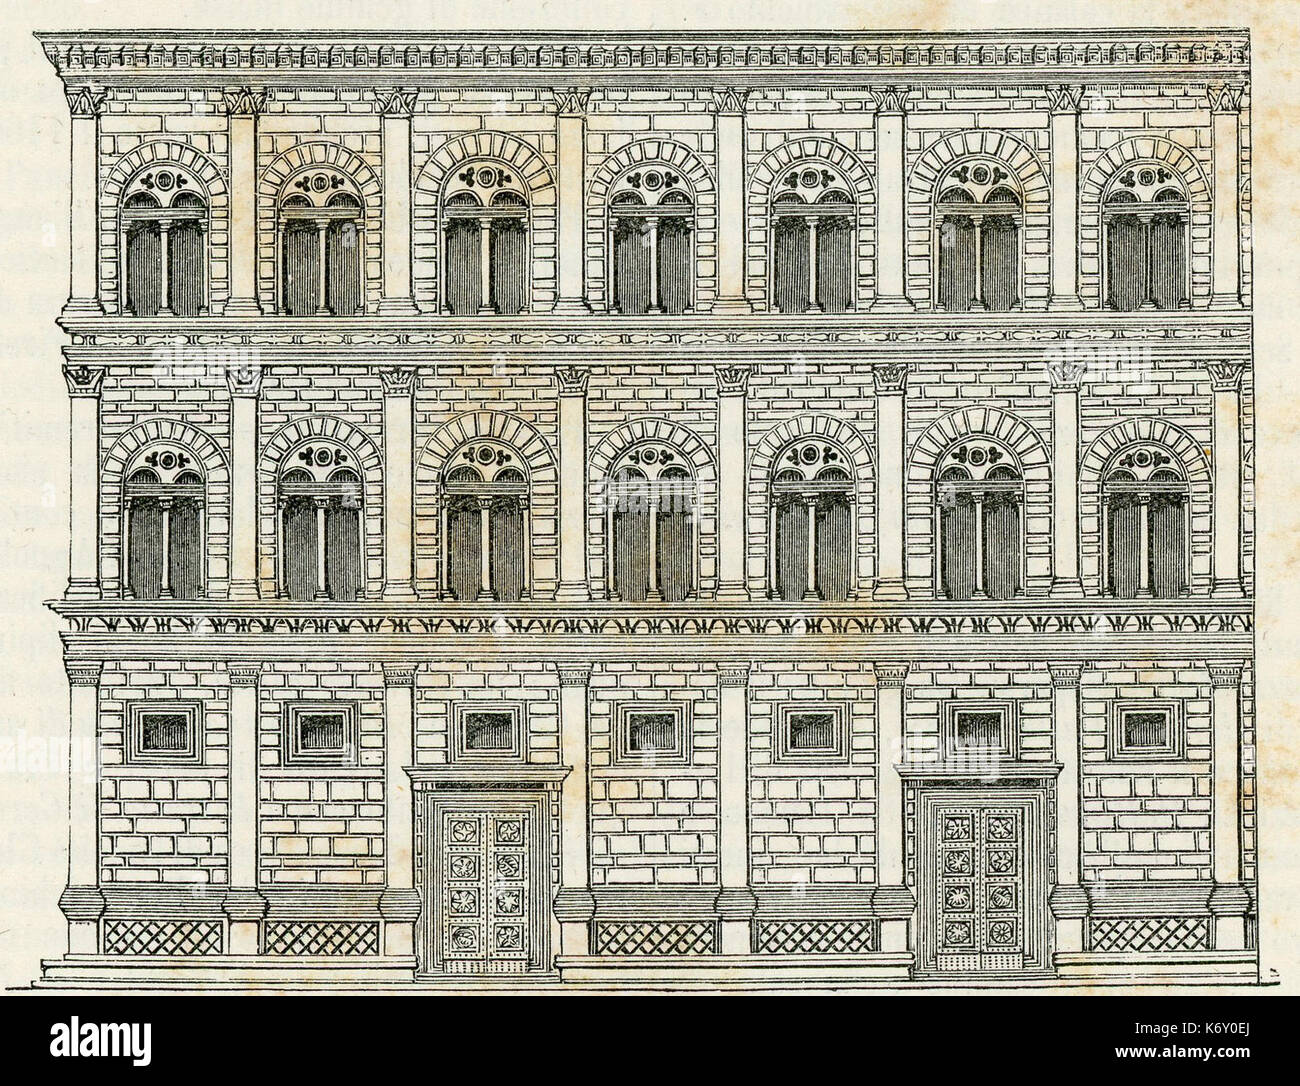 Palais rucellai de florence banque d 39 images photo stock 159174362 alamy - Palais des offices florence ...